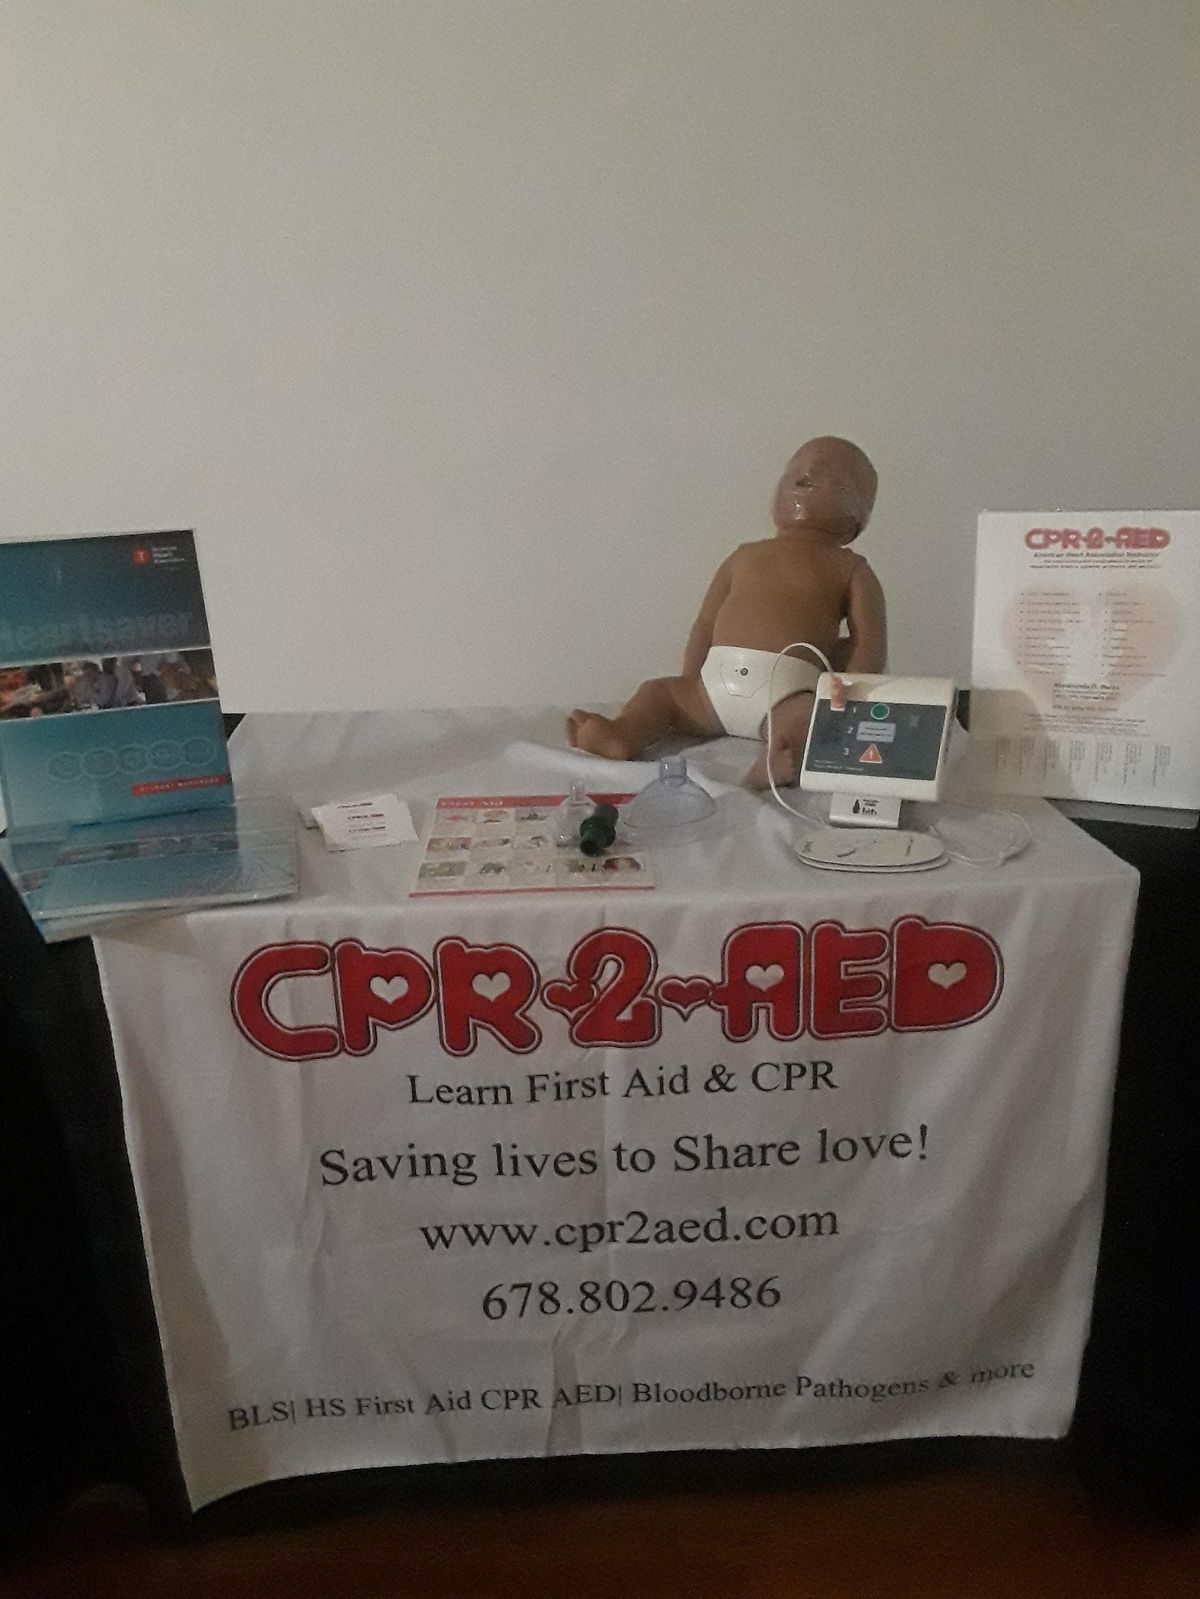 BLS First Aid CPR AED Bloodborne Pathogen Courses Weekly